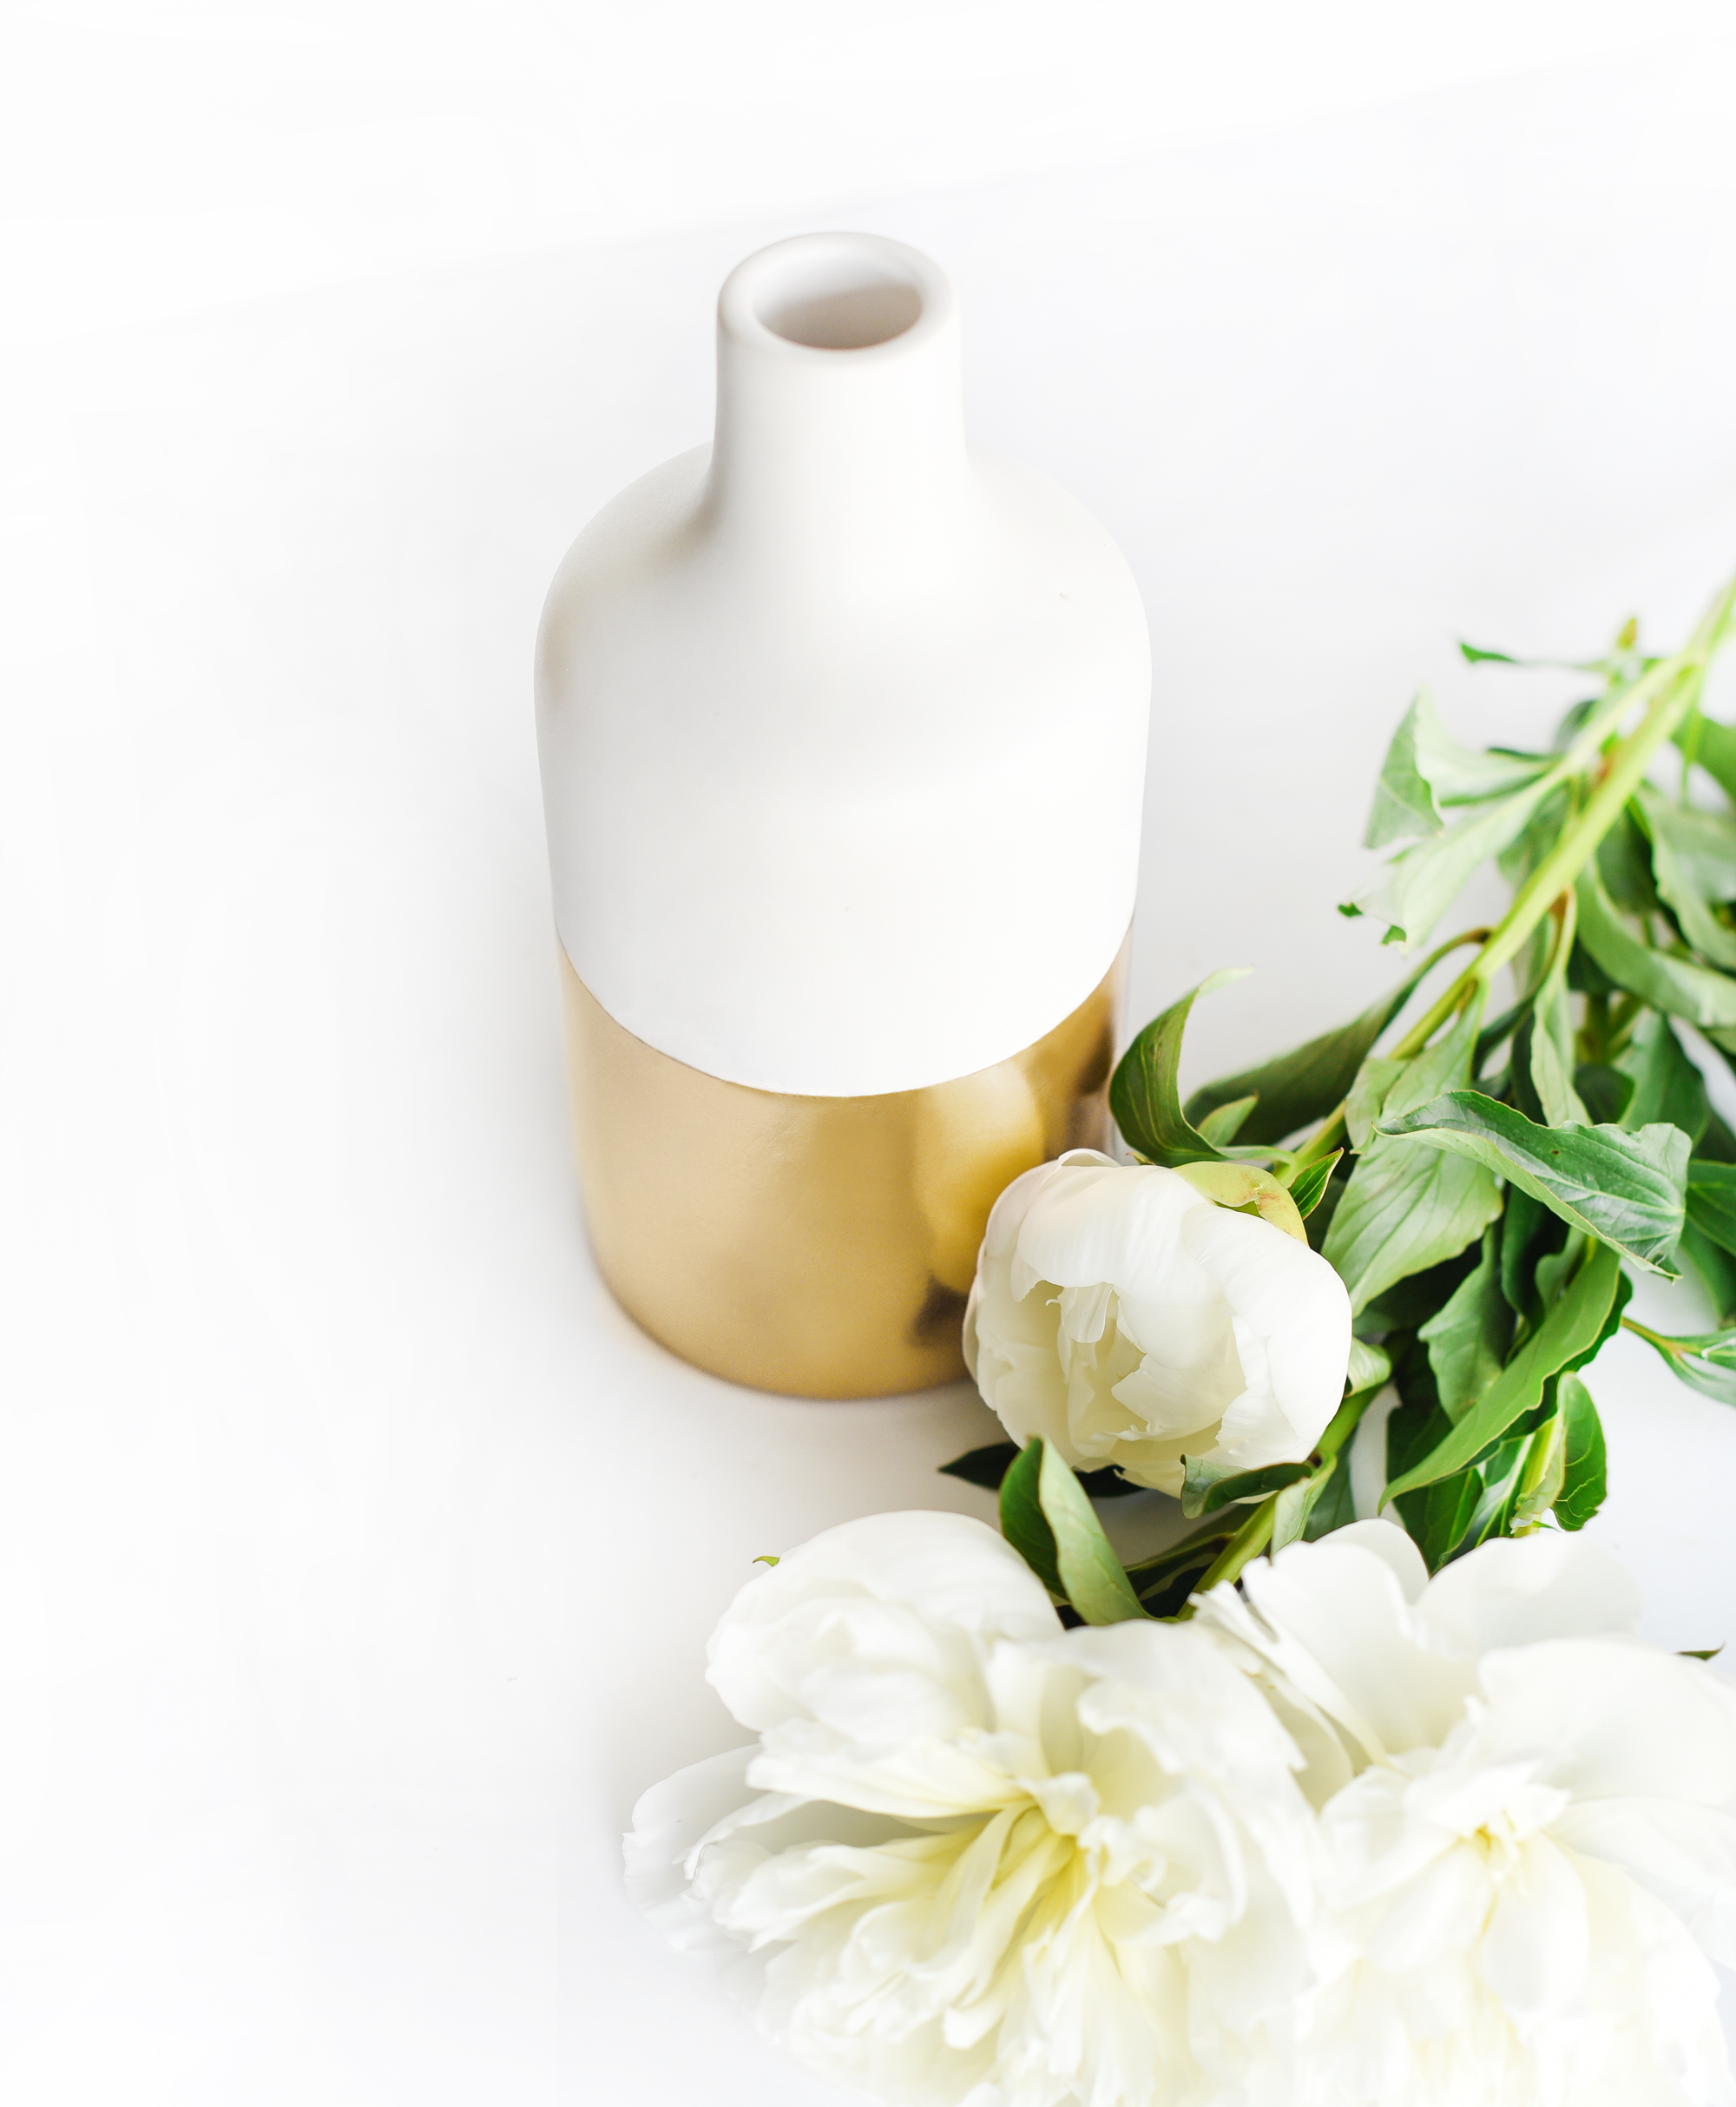 DIY Gold-Dipped Bouquet Vase